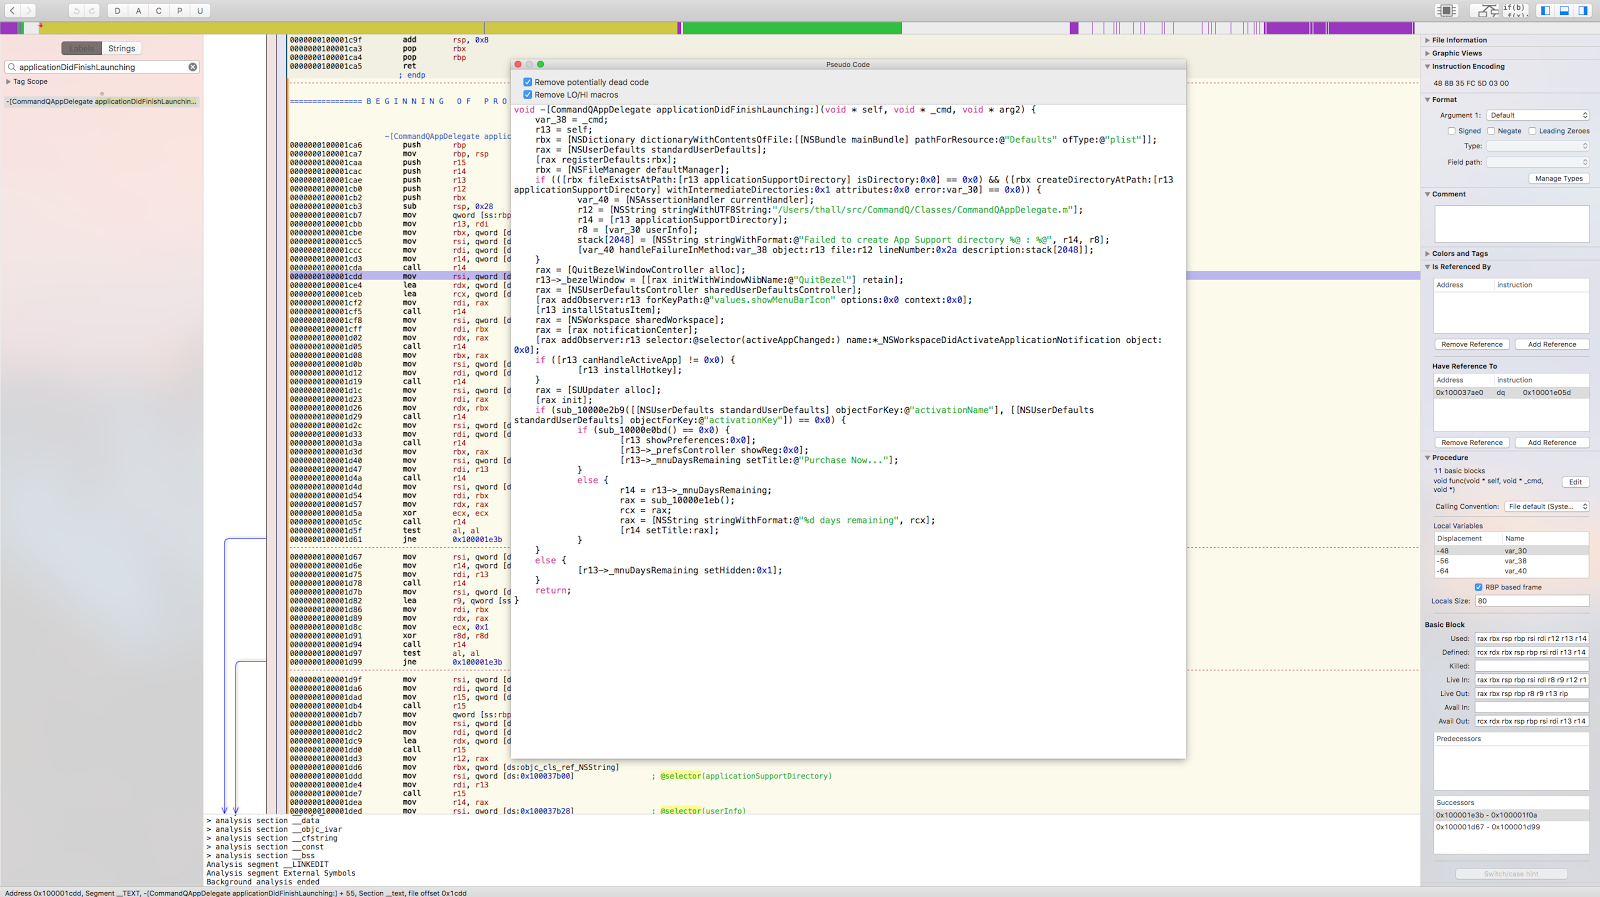 Reverse Engineering CommandQ Mac App and Removing licence